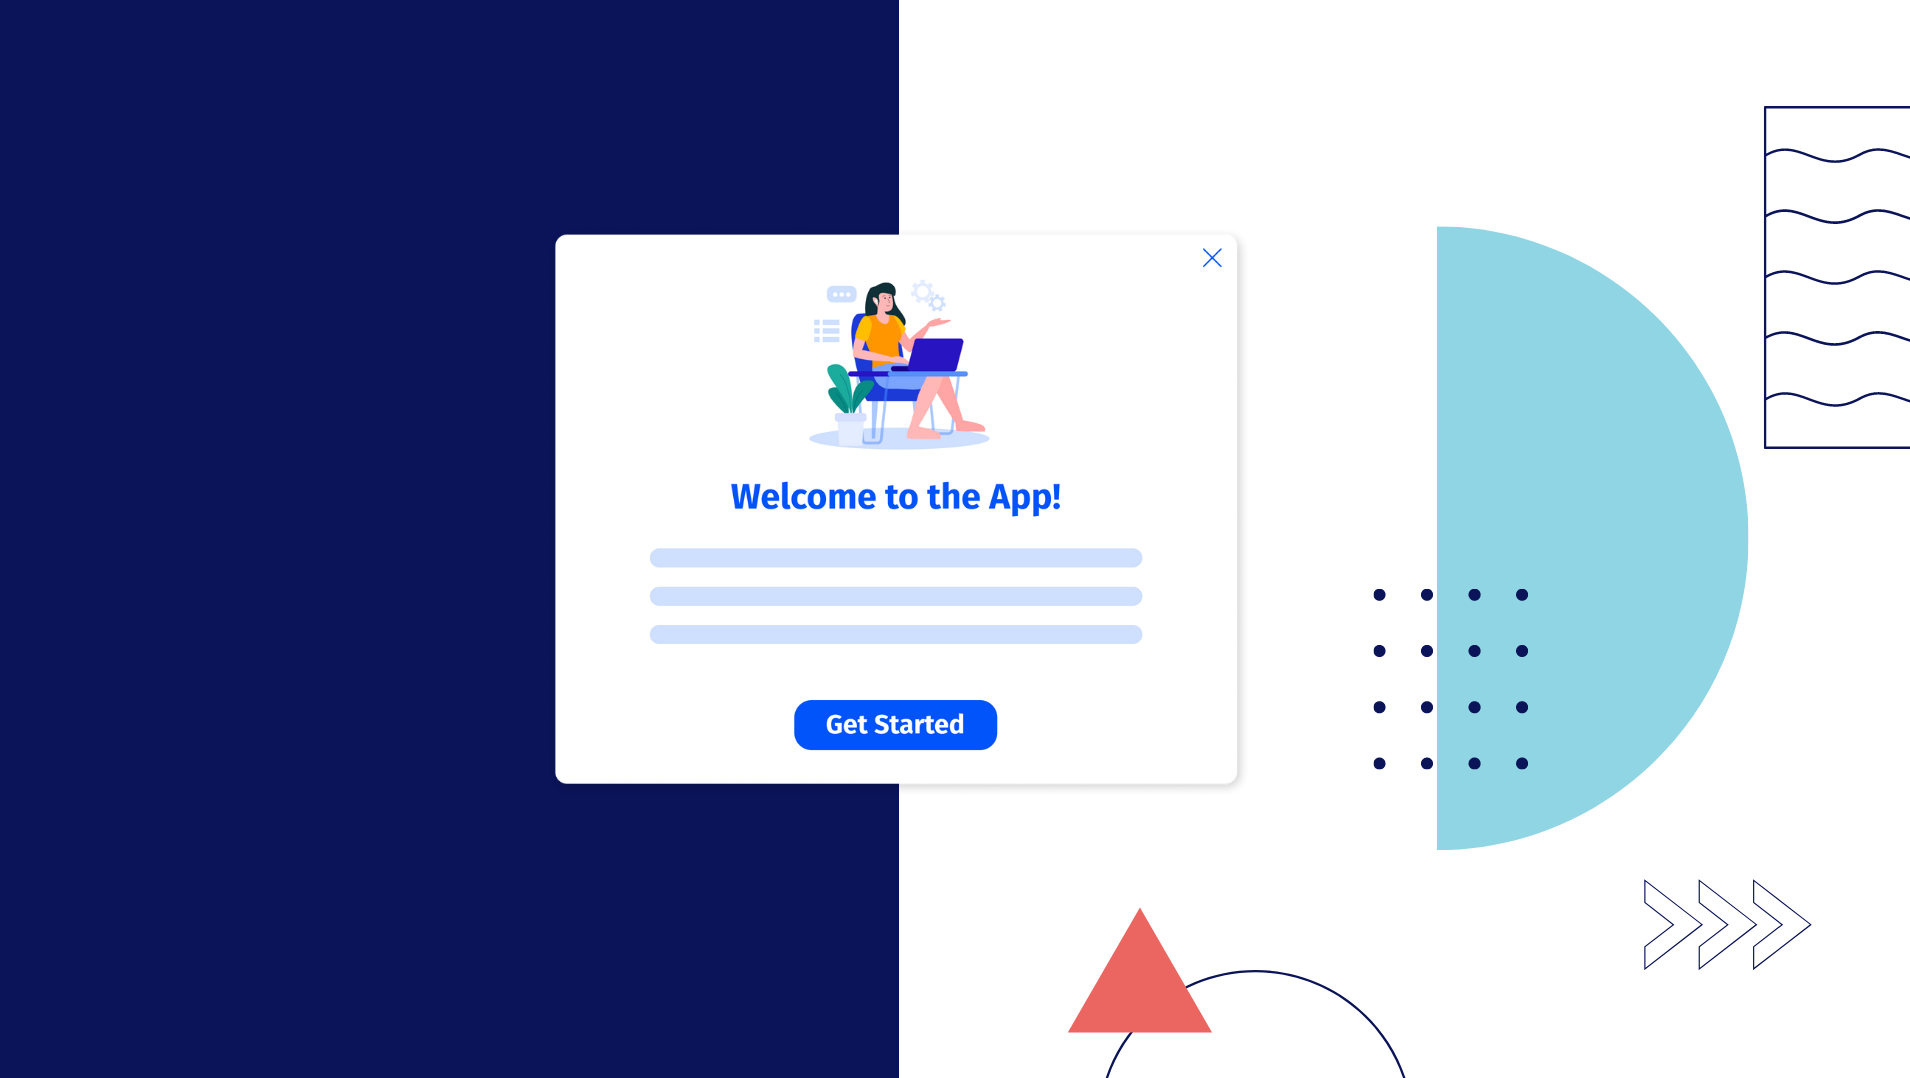 How to design great product onboarding experiences using Product Tours—Helppier Blog